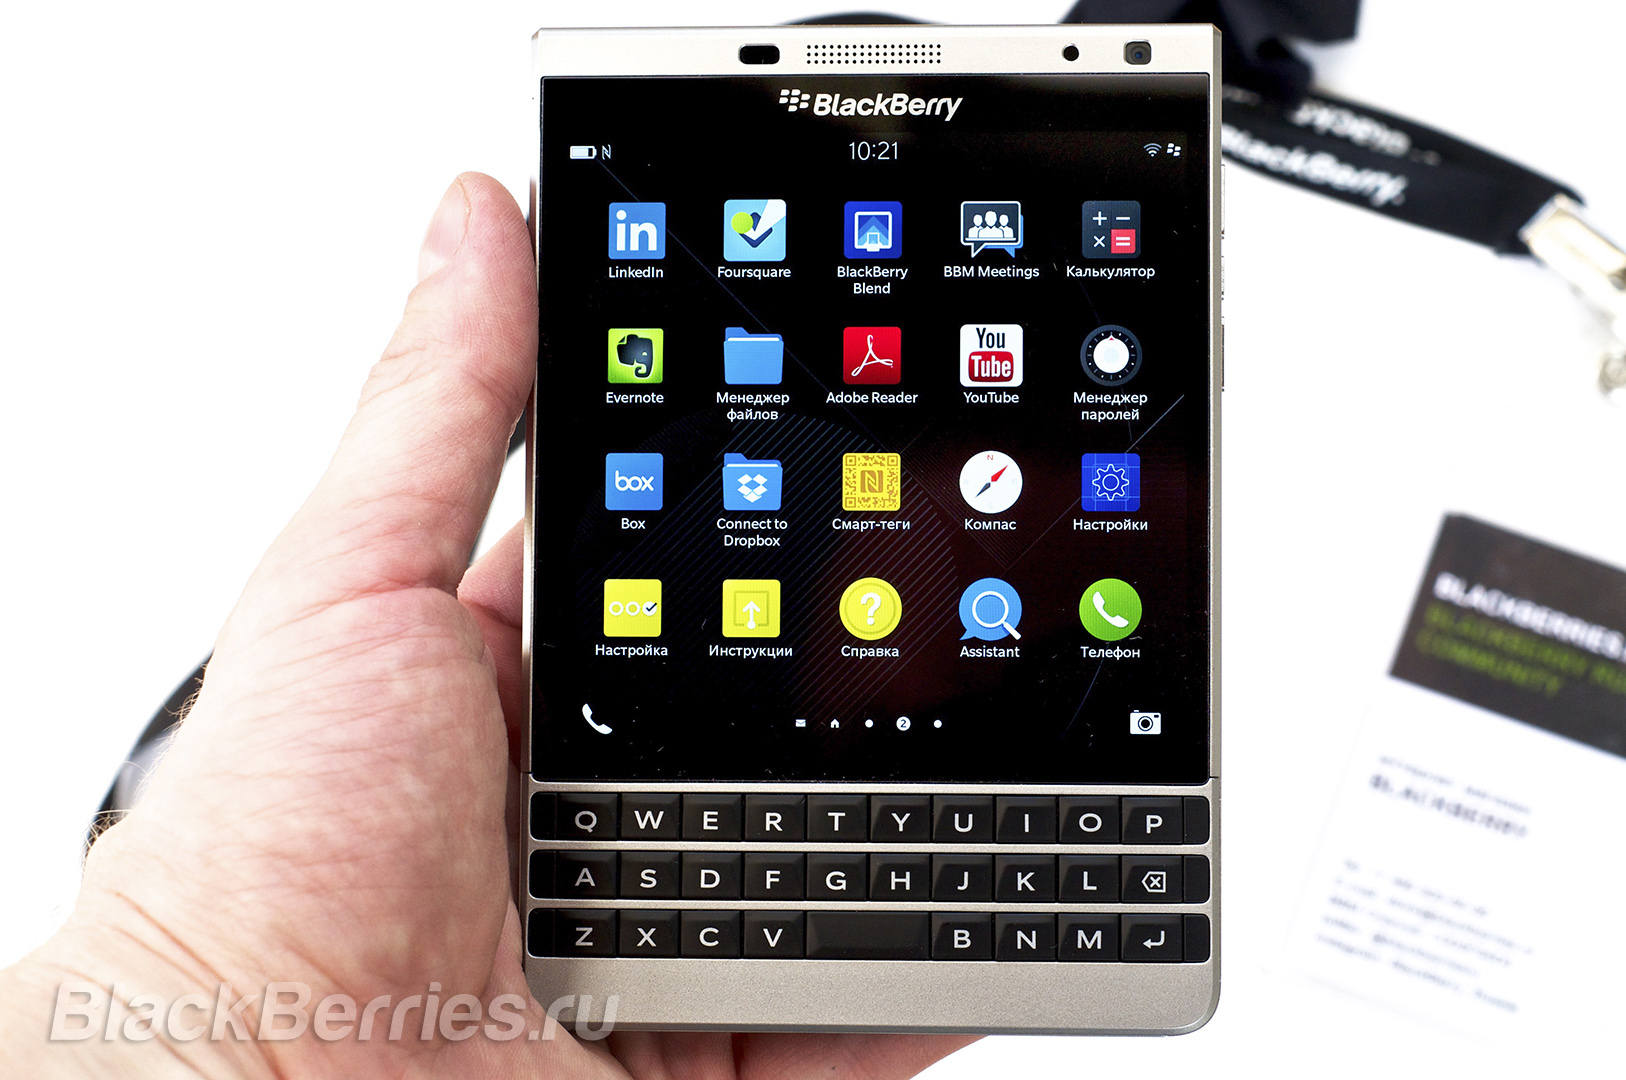 BlackBerry-Passport-Silver-Edition-Review-33